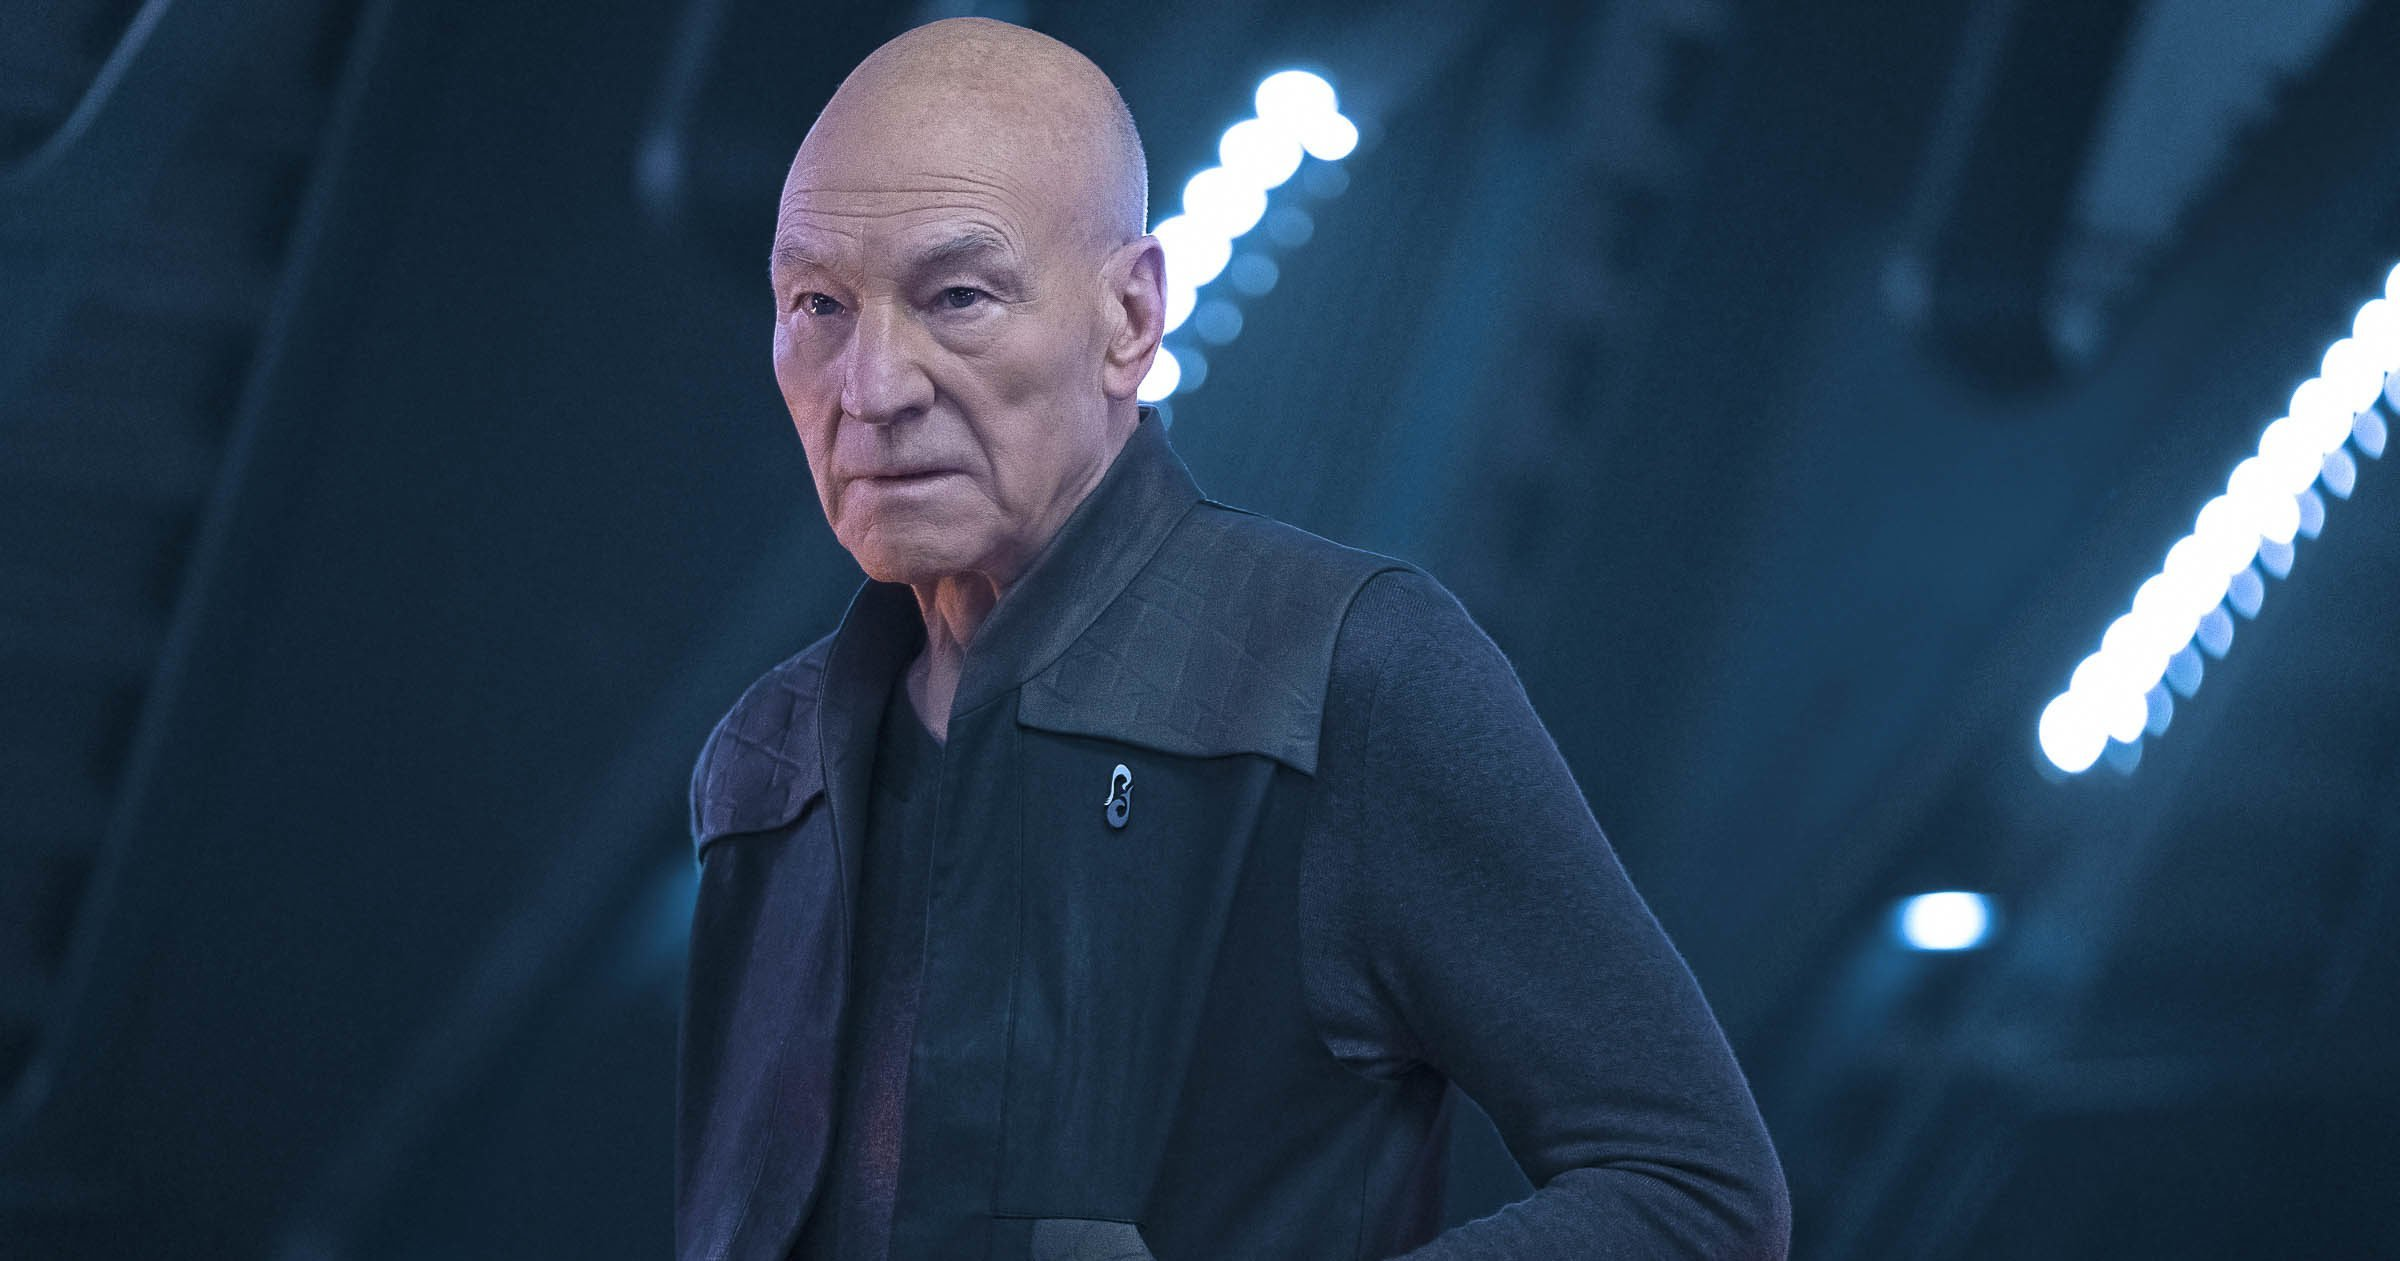 Jean-Luc Picard Is the Captain We Need Right Now